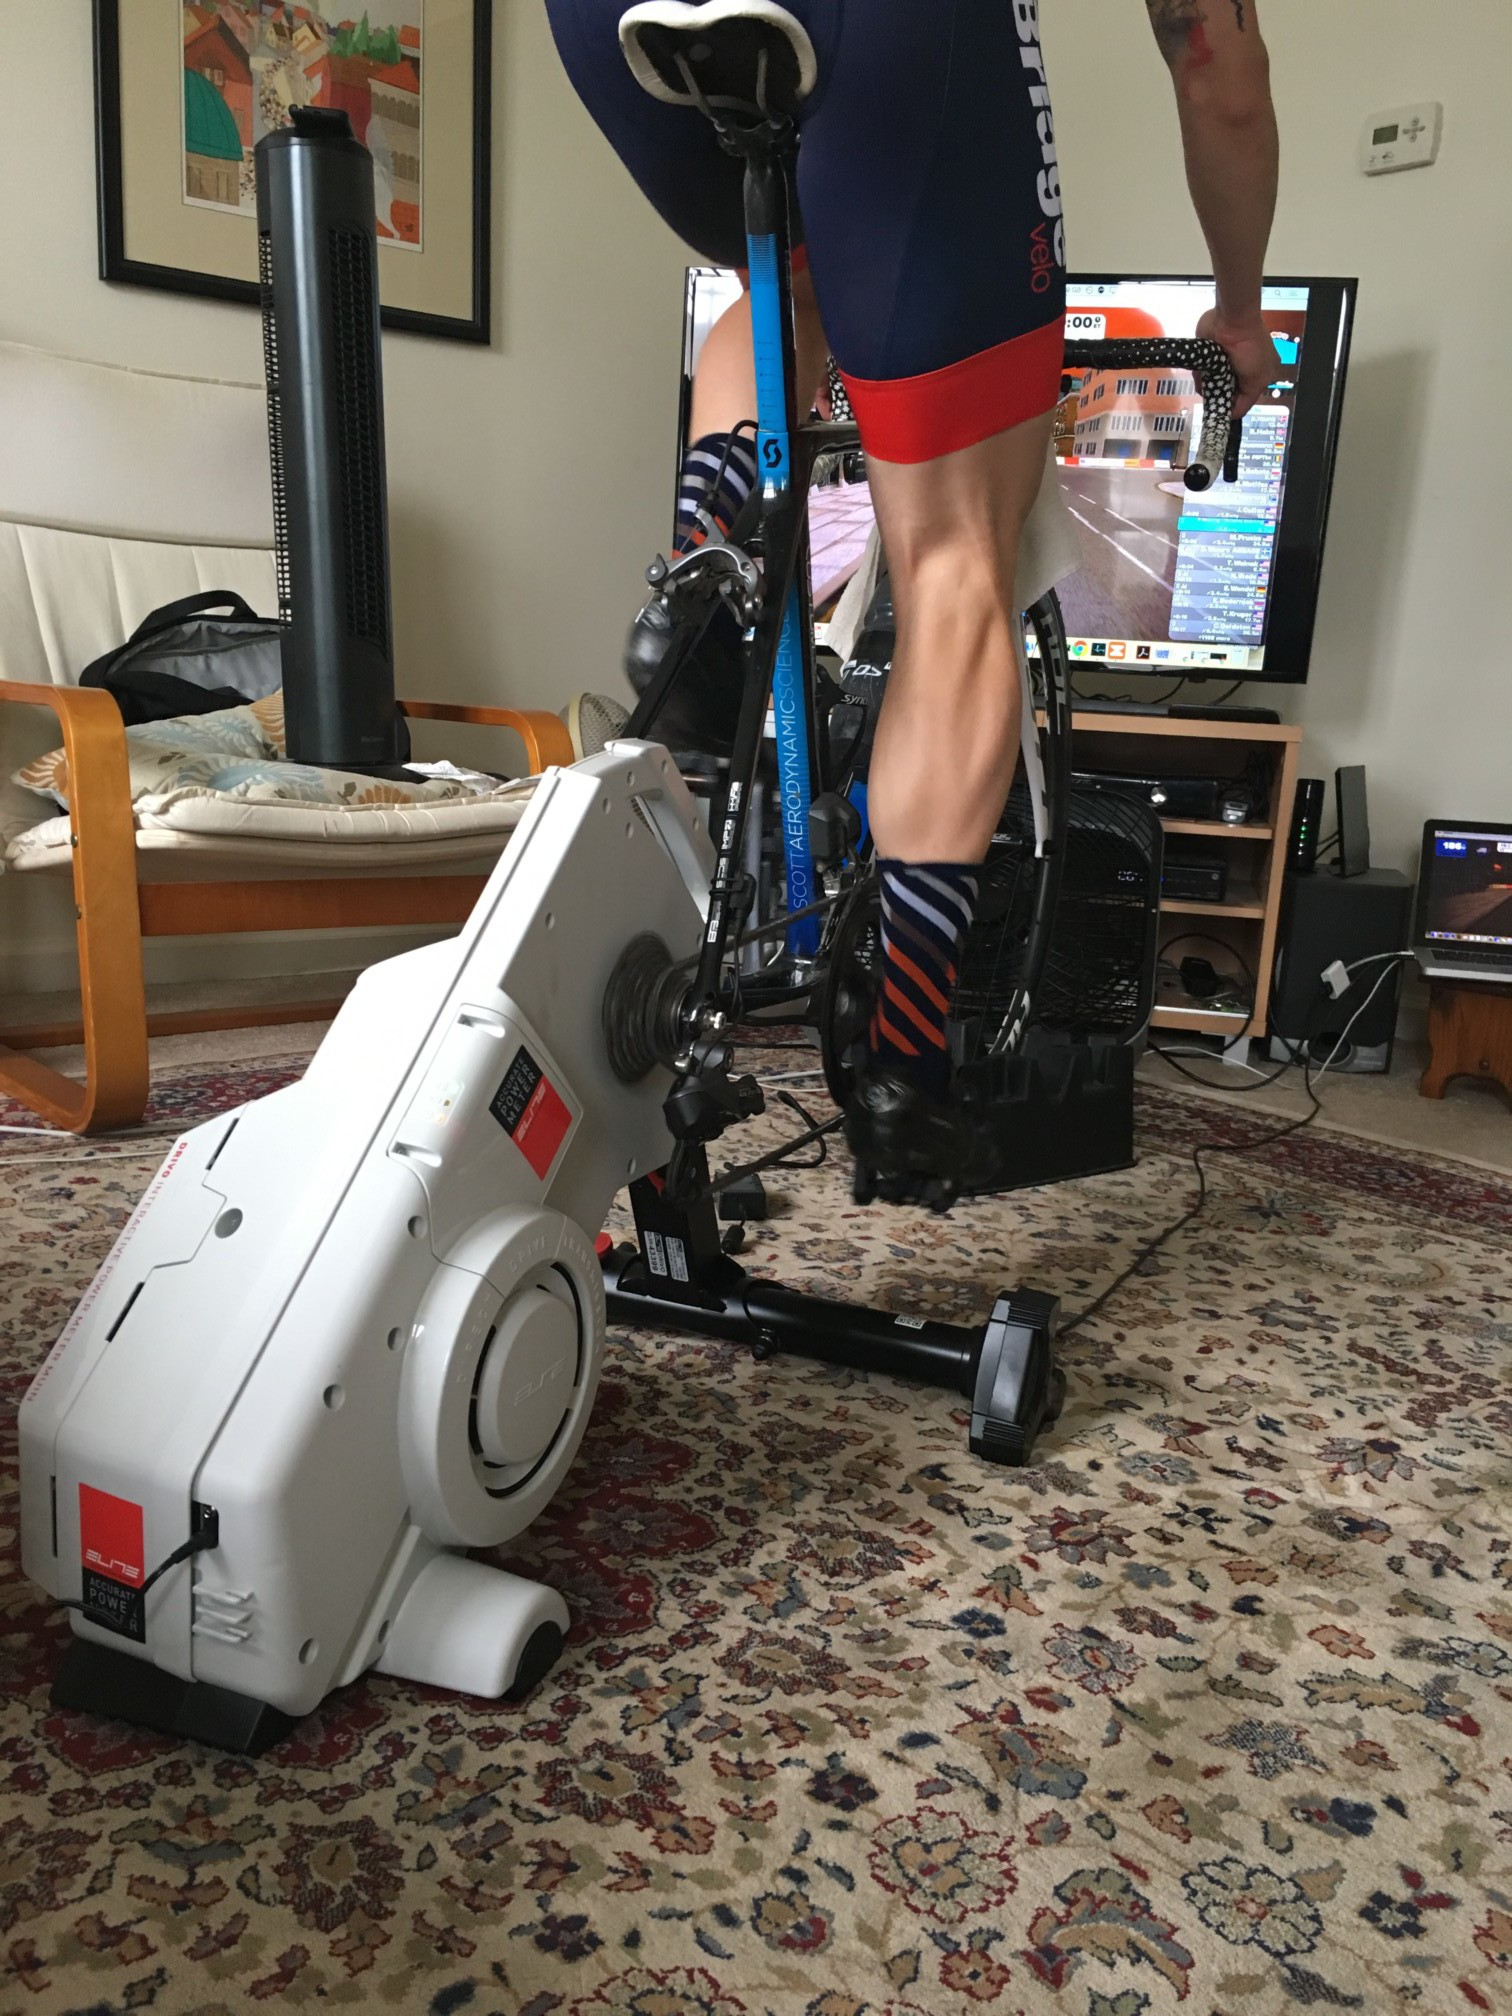 Muscular Endurance Cycling Training With Zwift - Get More